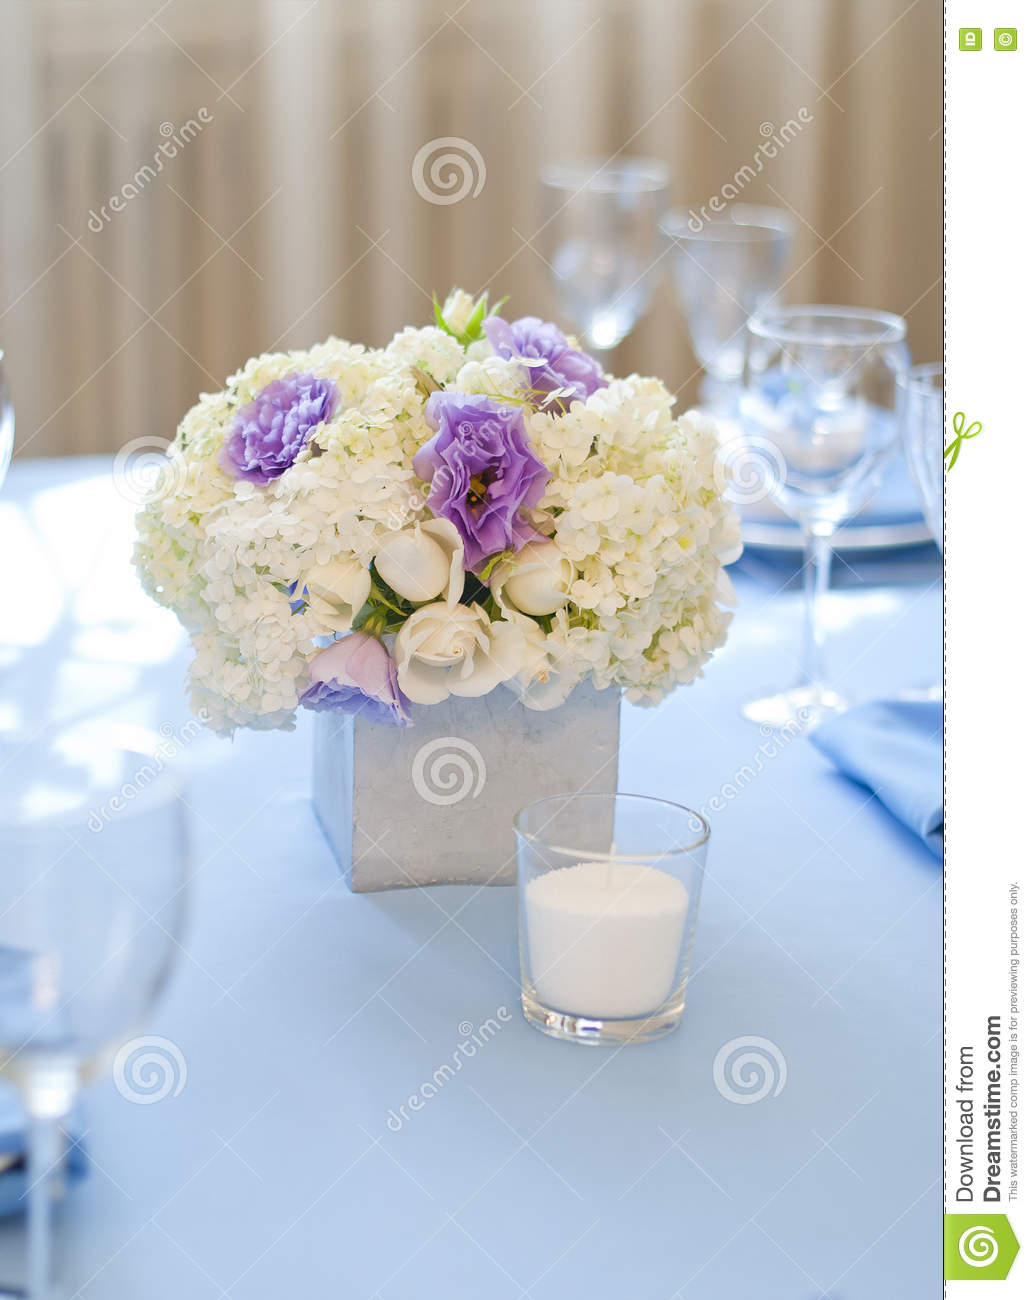 Floral Arrangement With White And Blue Flowers And Candles Stock